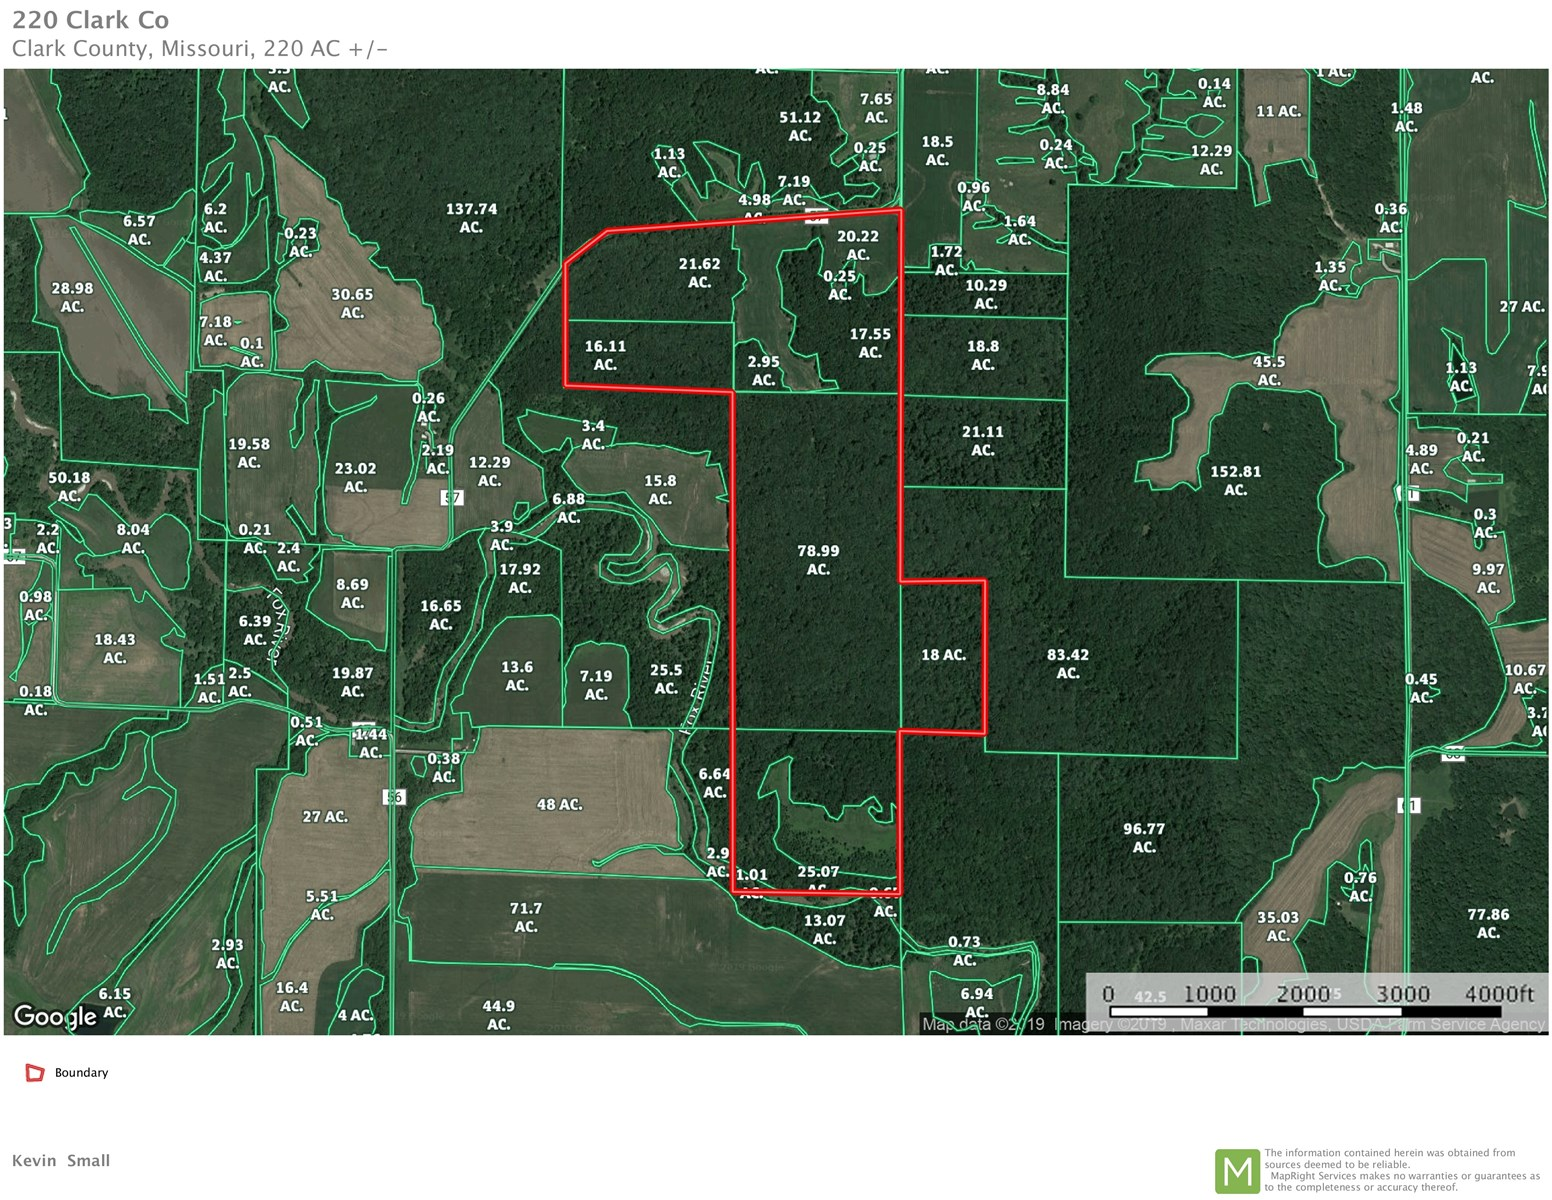 Mo Deer Hunting Land For Sale, Nemo Land Clark Co, Mo Timber